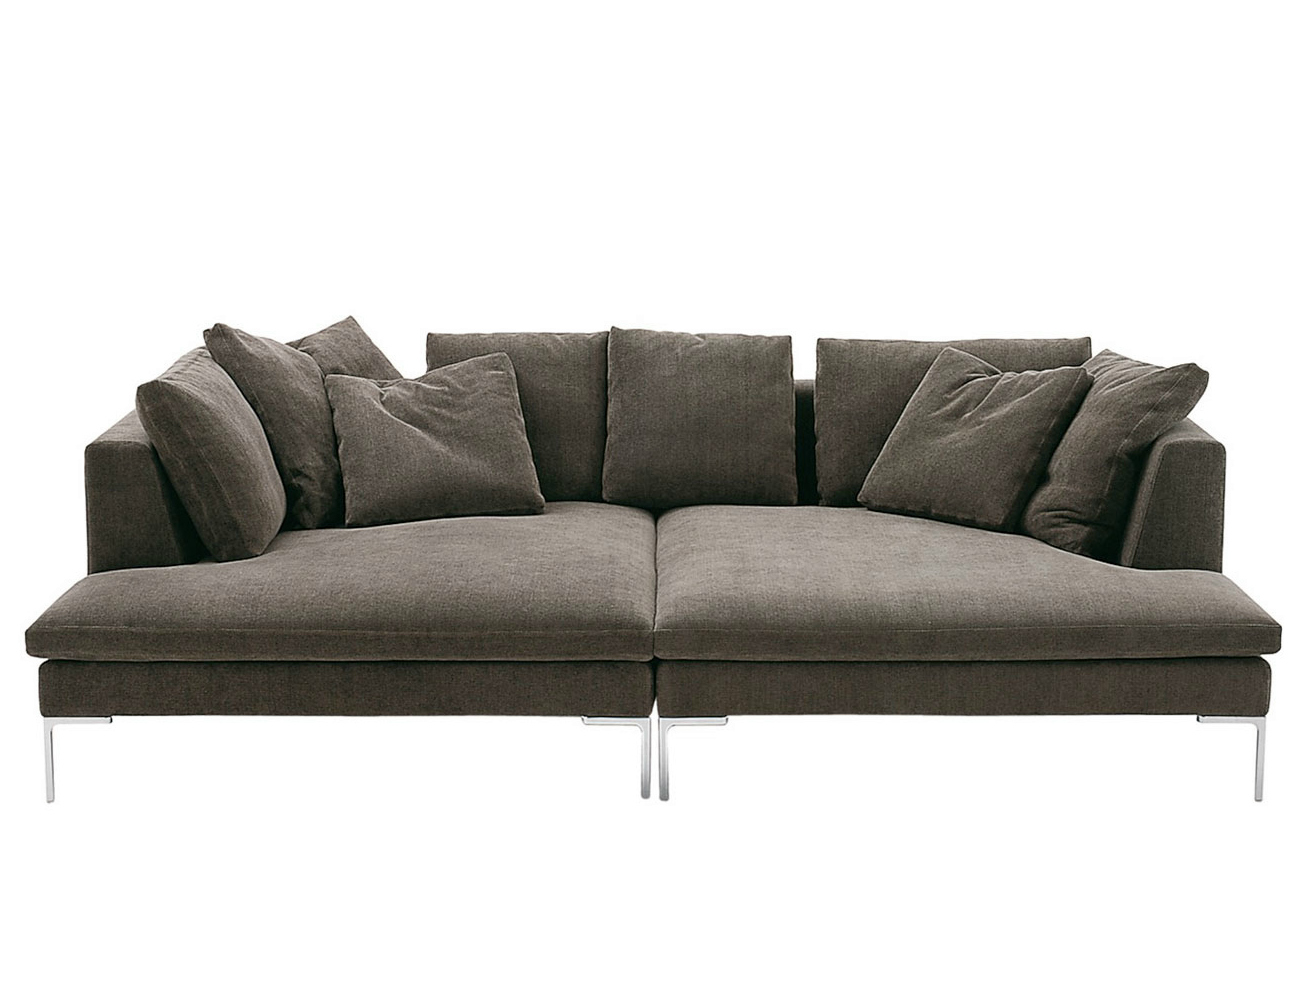 Charles Large Sectional Sofa By B B Italia Design Antonio Citterio